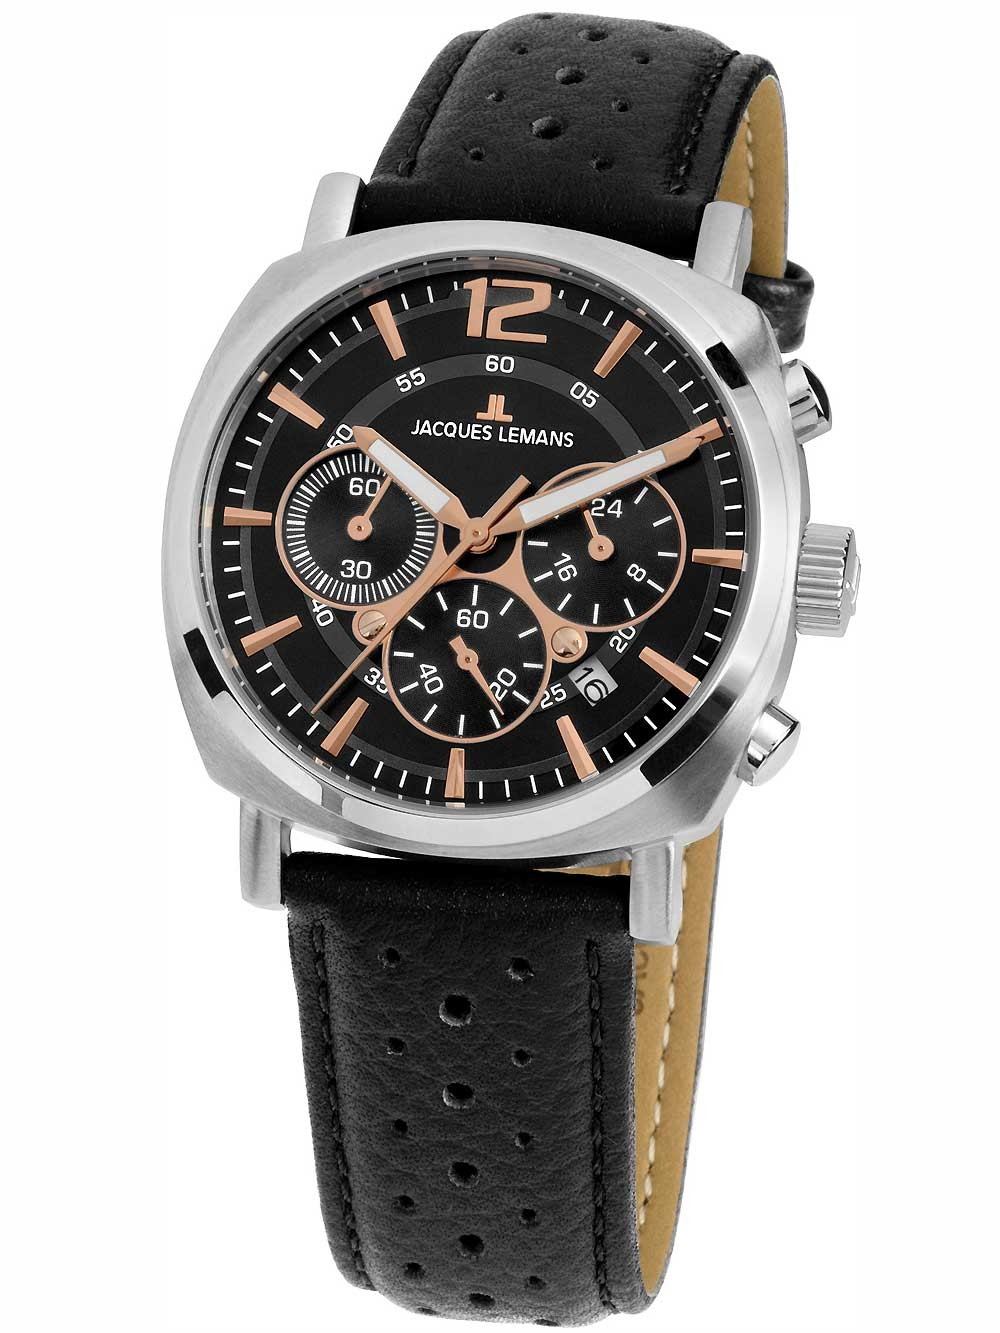 watches chrono12 jacques lemans 1 1931a lugano. Black Bedroom Furniture Sets. Home Design Ideas